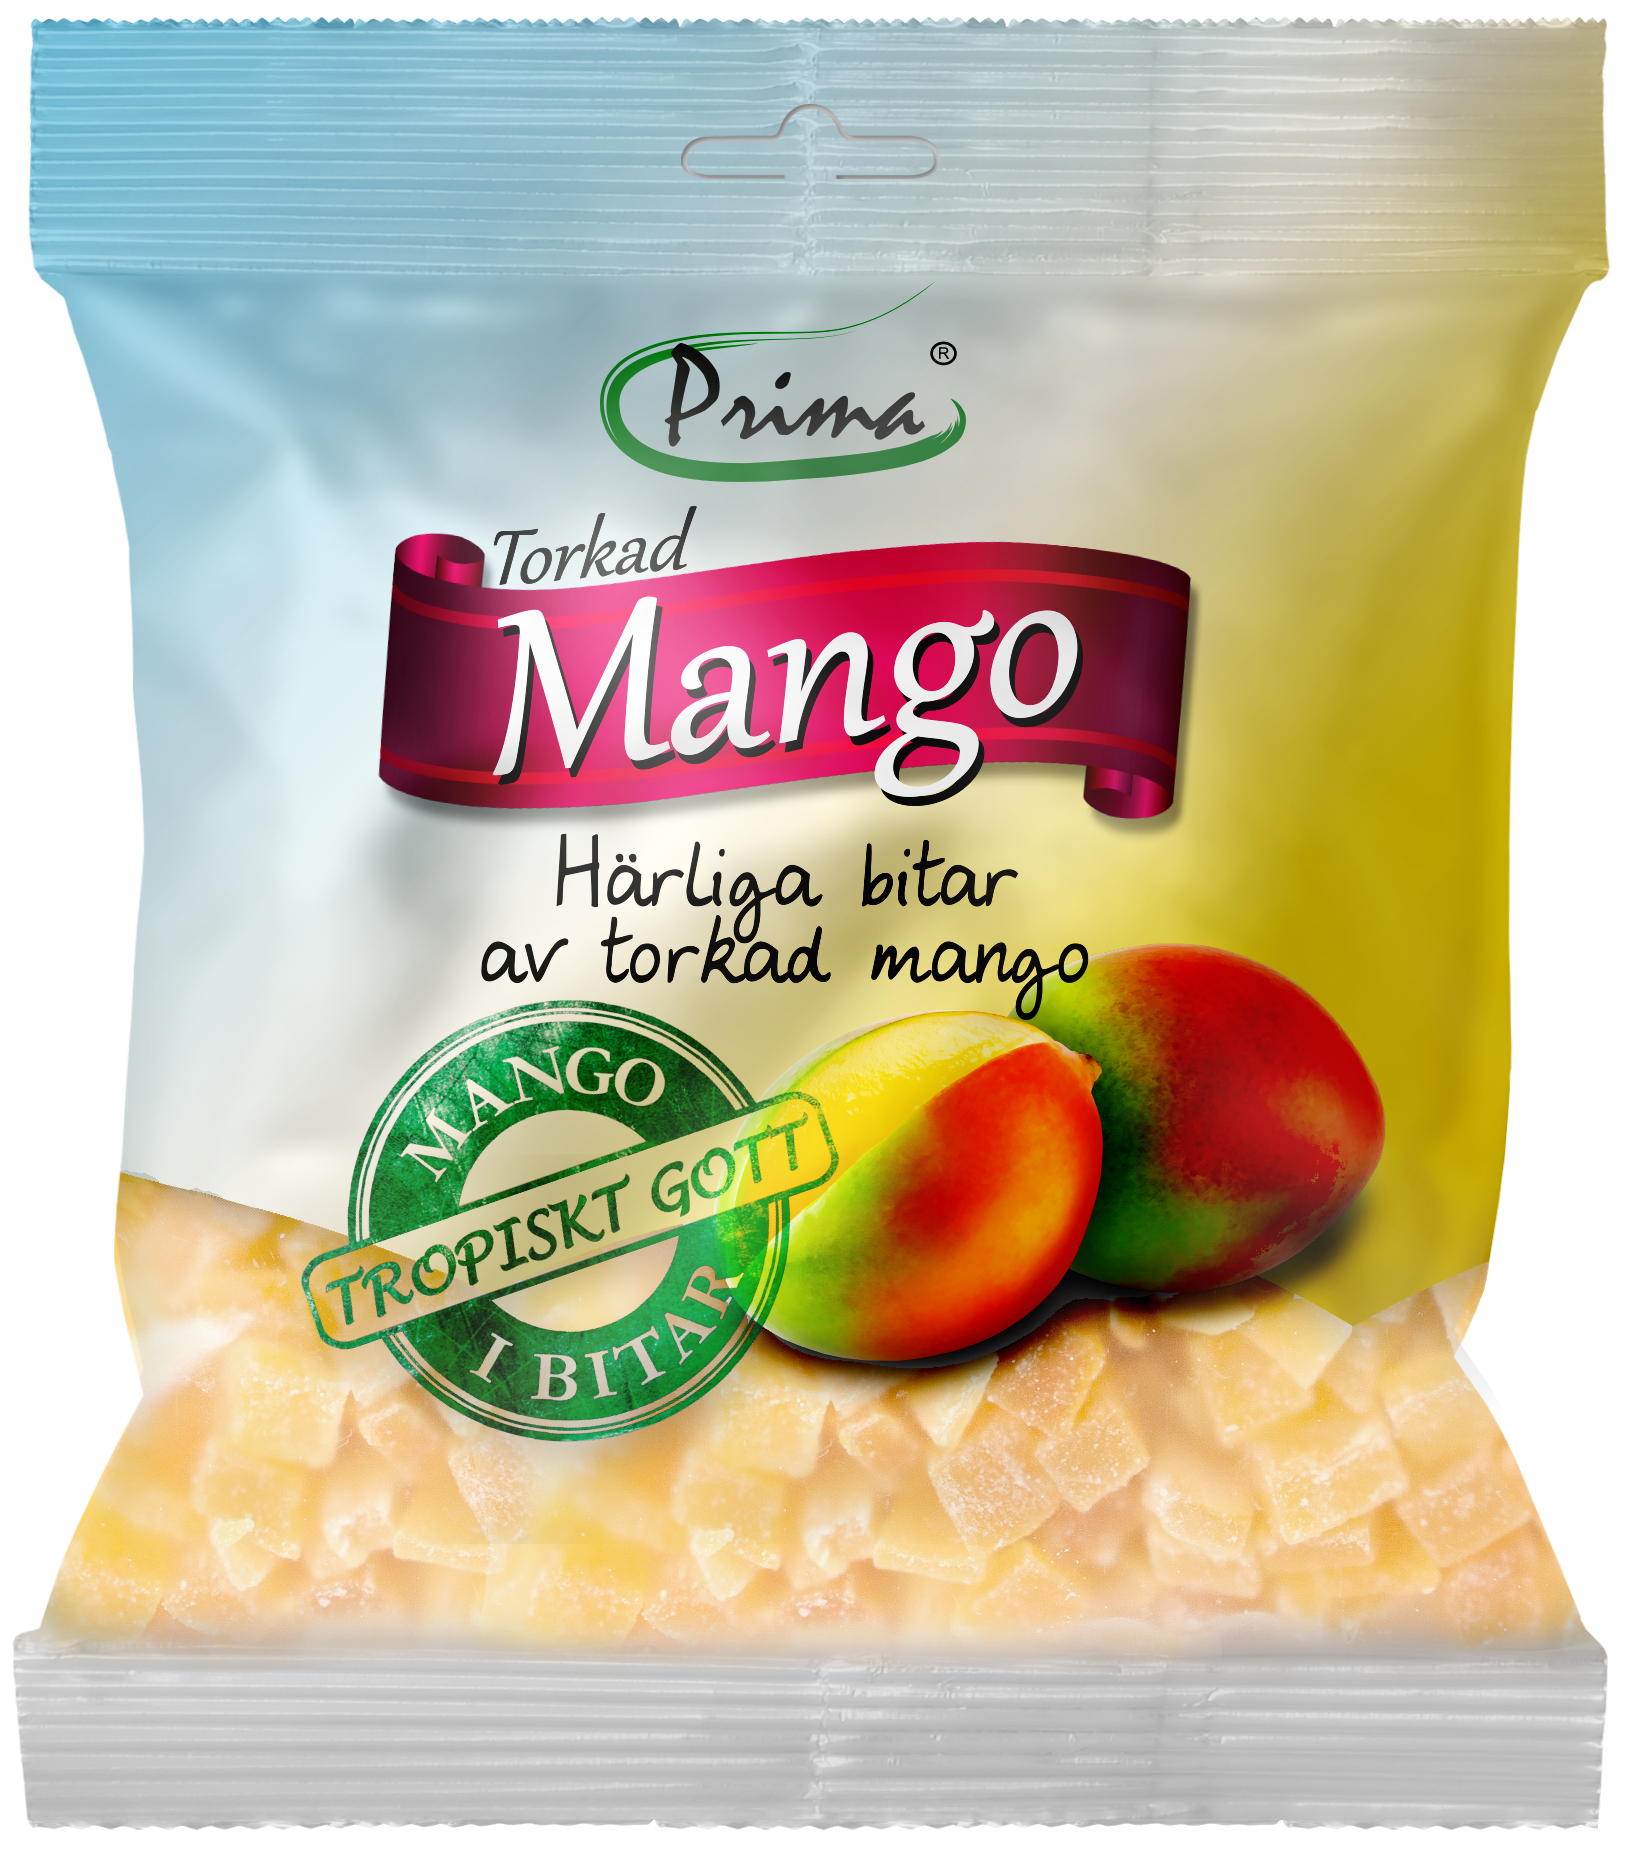 dried mango - Delicious pieces of dried mango. The bag contain 175 g.Ingredients:Dried pieces of mango, sugar, preservative E220, acidity regulator E330Nutritional value per 100gEnergy 360kcal / 1507 kJFat 0g, of which saturated fat is 0gCarbohydrates 90g, of which sugars 74gProtein 1gSalt 287.5mg